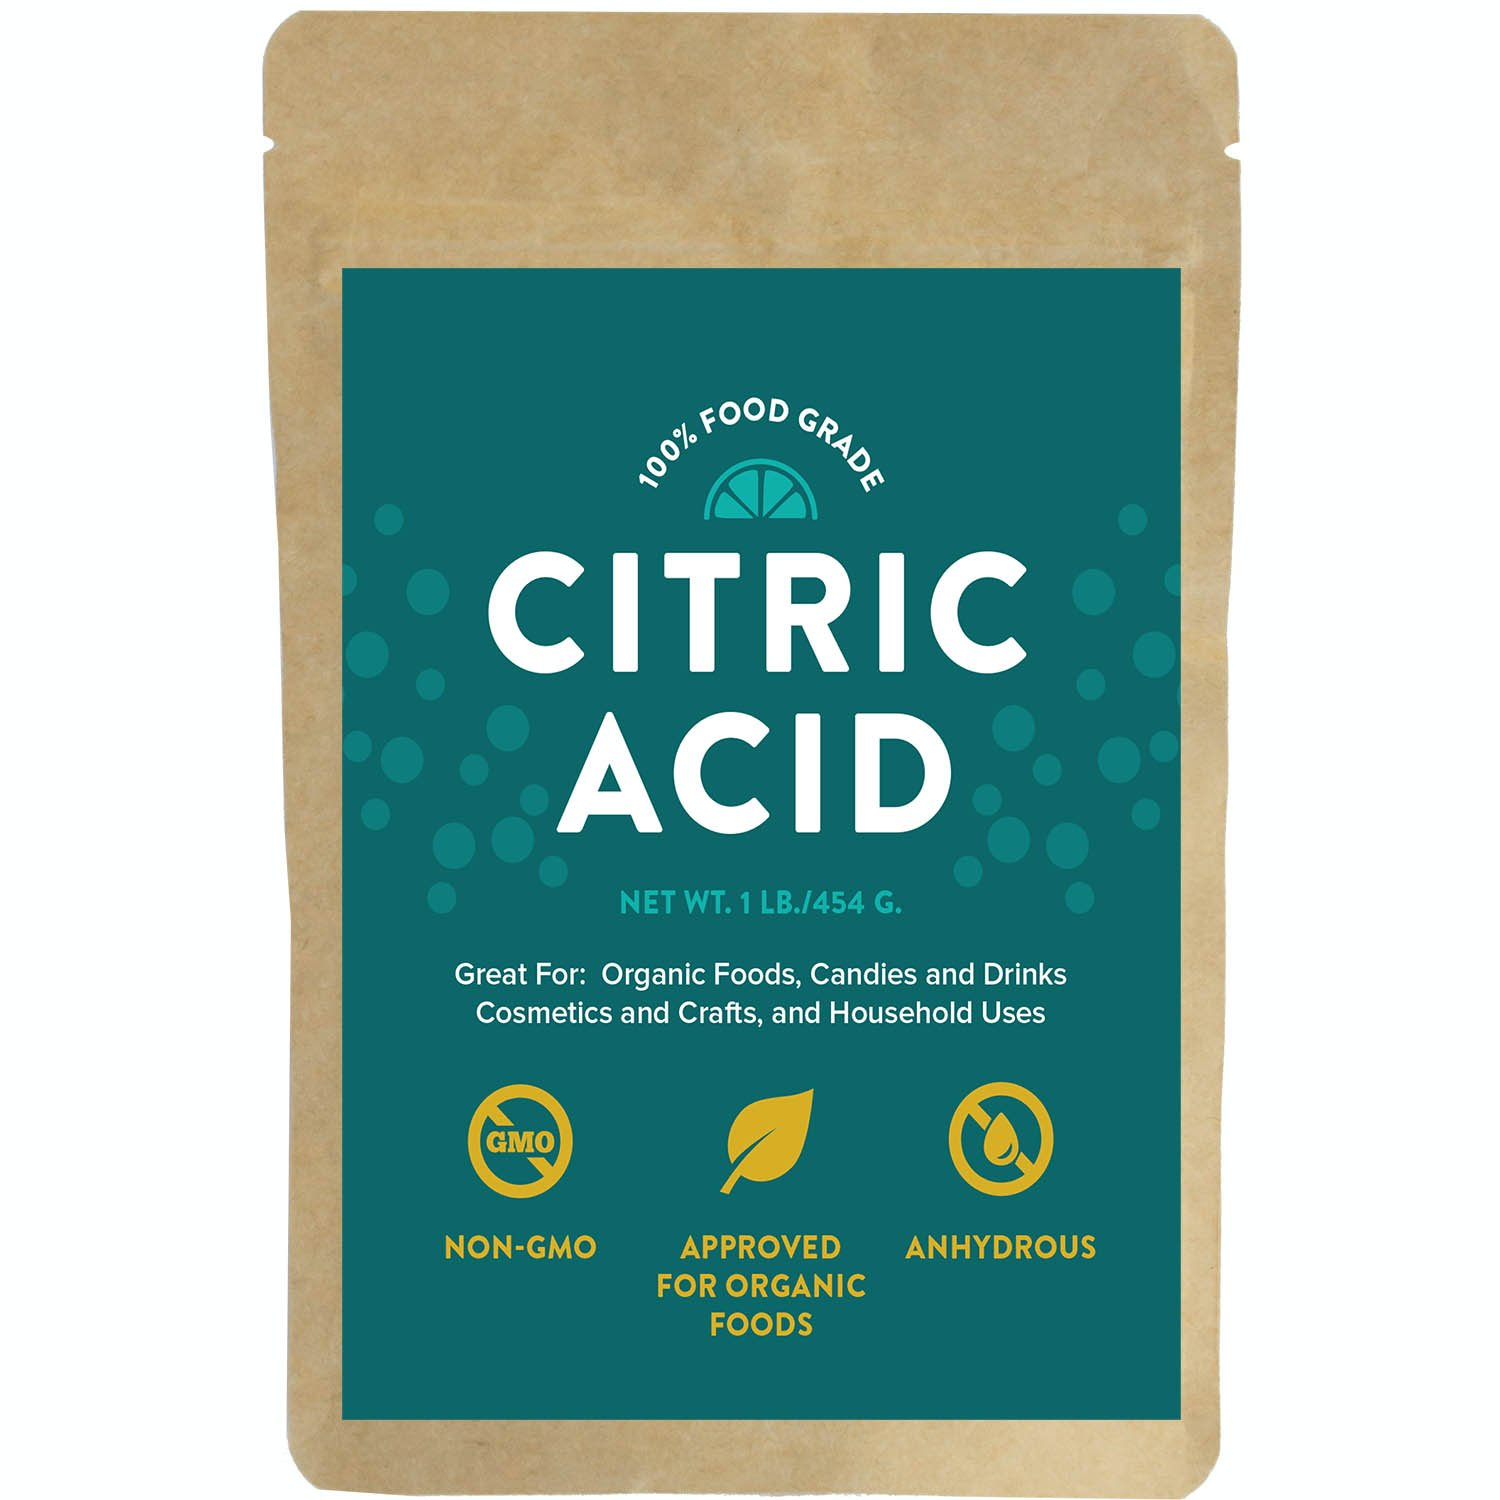 Citric Acid - For Bath Bombs, 1 Pound, 100% Food Grade Powder, Non-Gmo, Approved For Organic Foods, Cosmetics, Crafts and More!